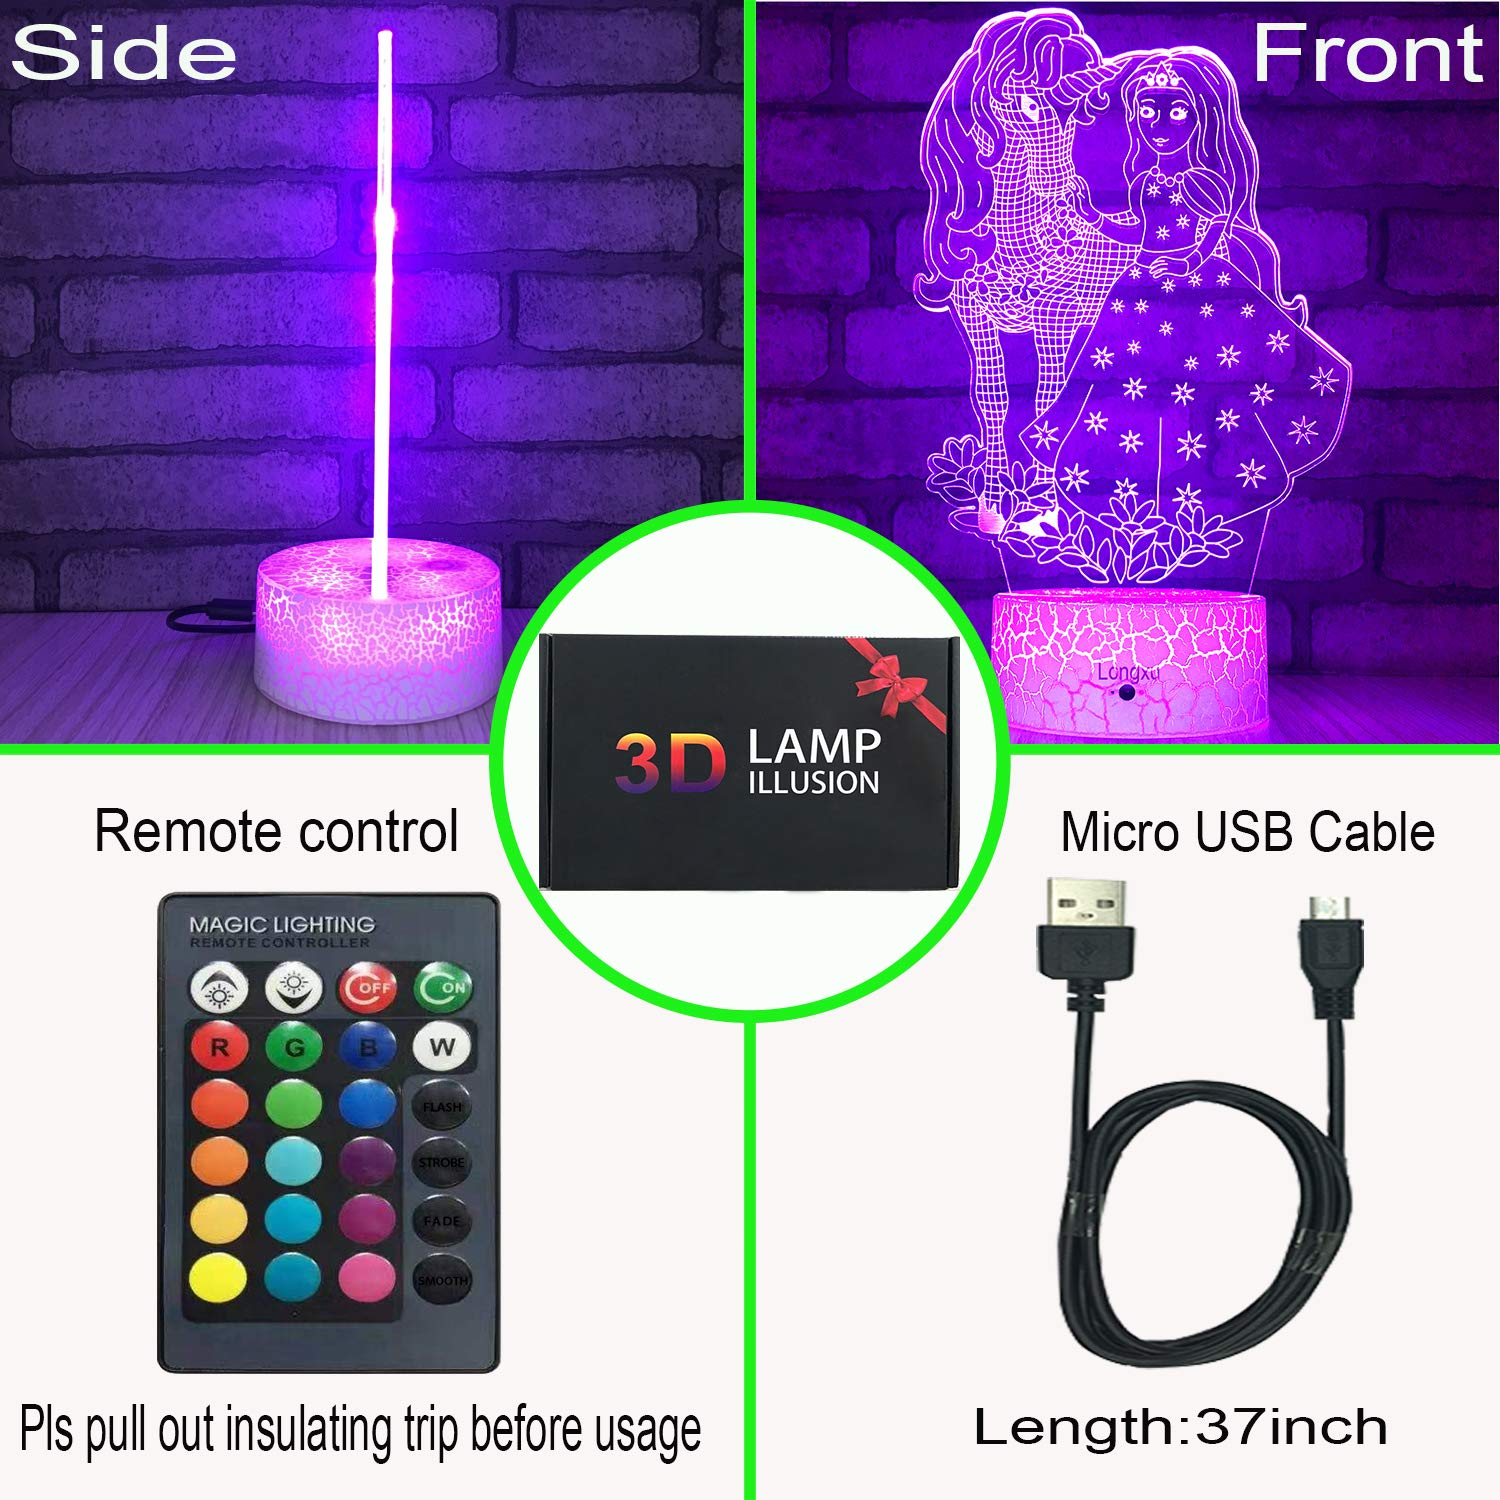 Longxu Unicorn Gifts Night Lights for Kids with Remote /& Smart Touch 7 Colors 16 Colors Changing Dimmable Unicorn Toys 1 2 3 4 5 6 7 8 Year Old Girl Boys Gifts Perfect Unicorn